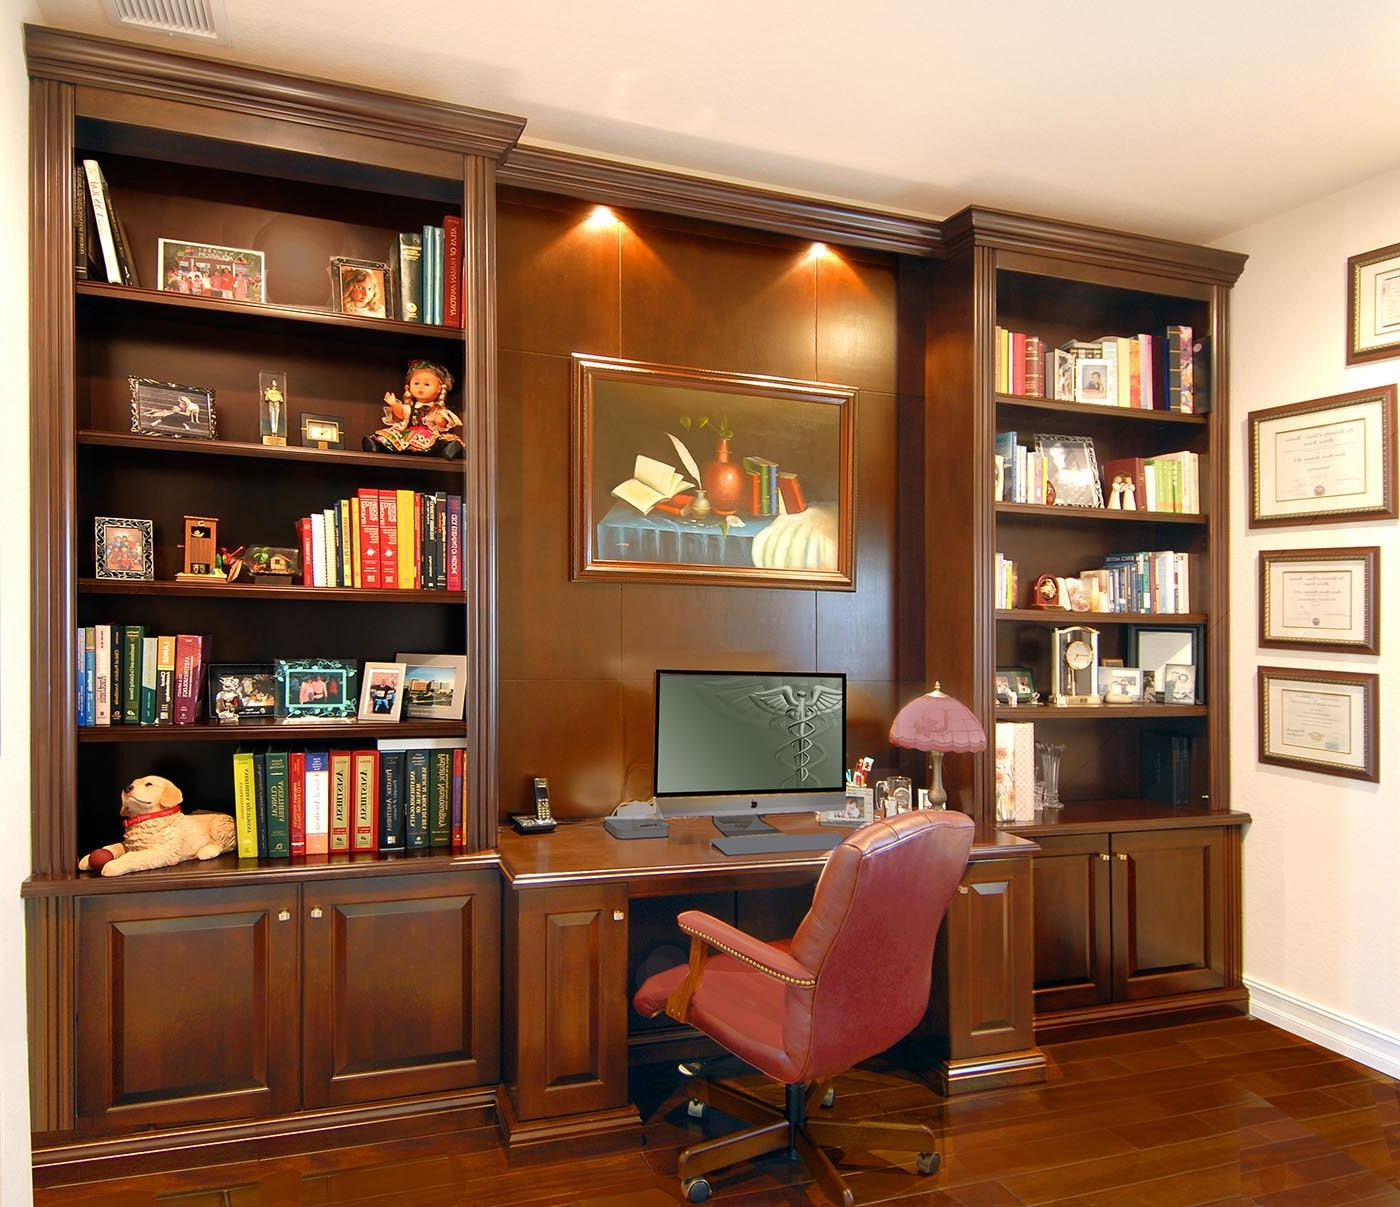 Widely Used Full Wall Bookcases Inside Bookshelf Cabinet Wall Unit Full Wall Bookshelves Diy High (View 9 of 15)